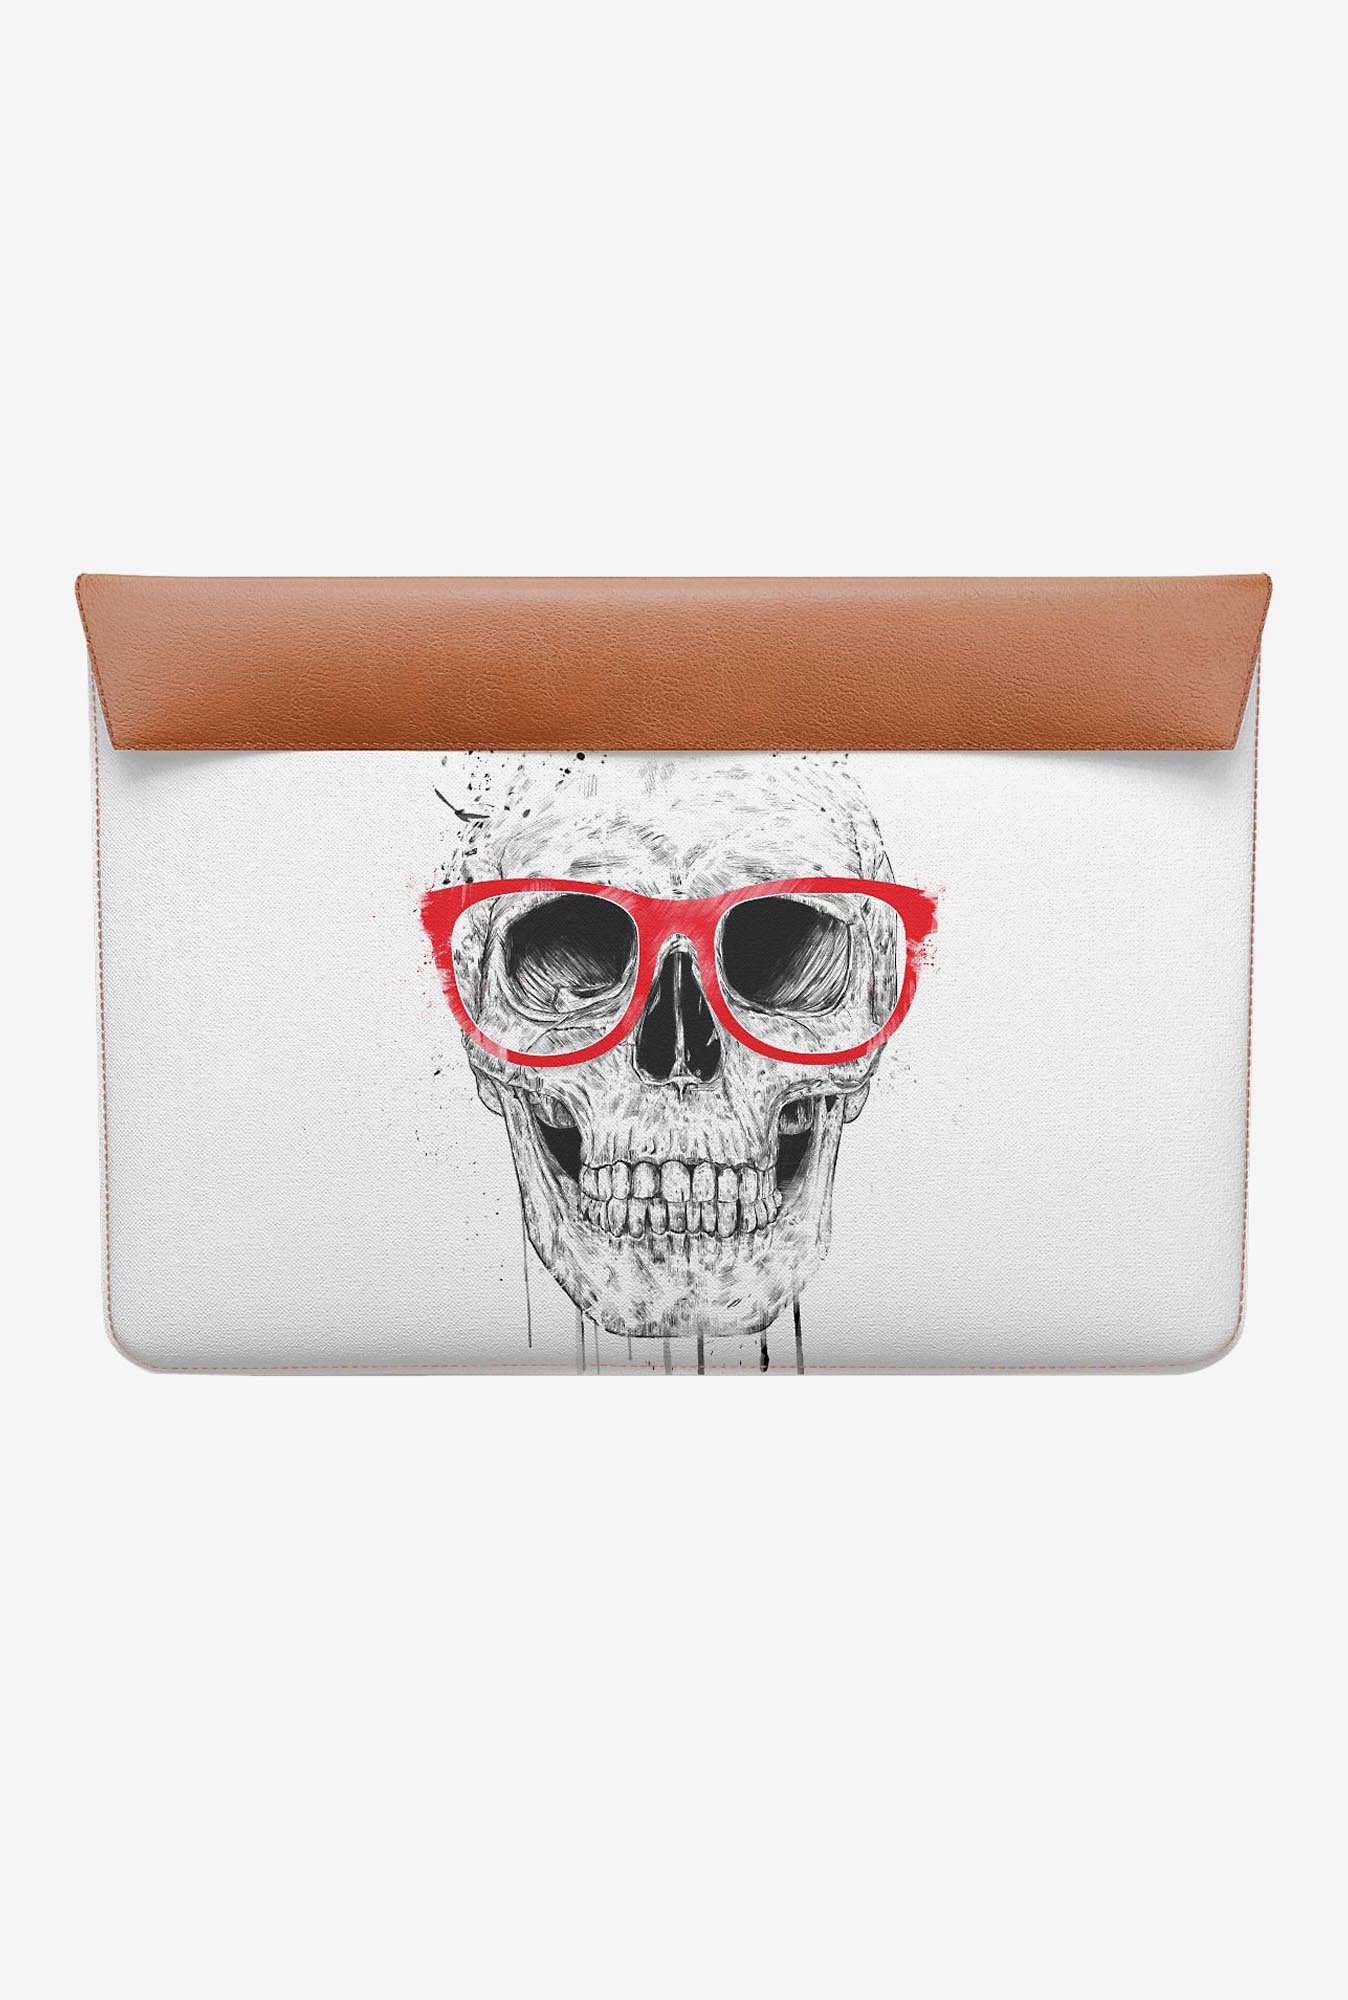 DailyObjects Skull Red Glass MacBook Pro 15 Envelope Sleeve